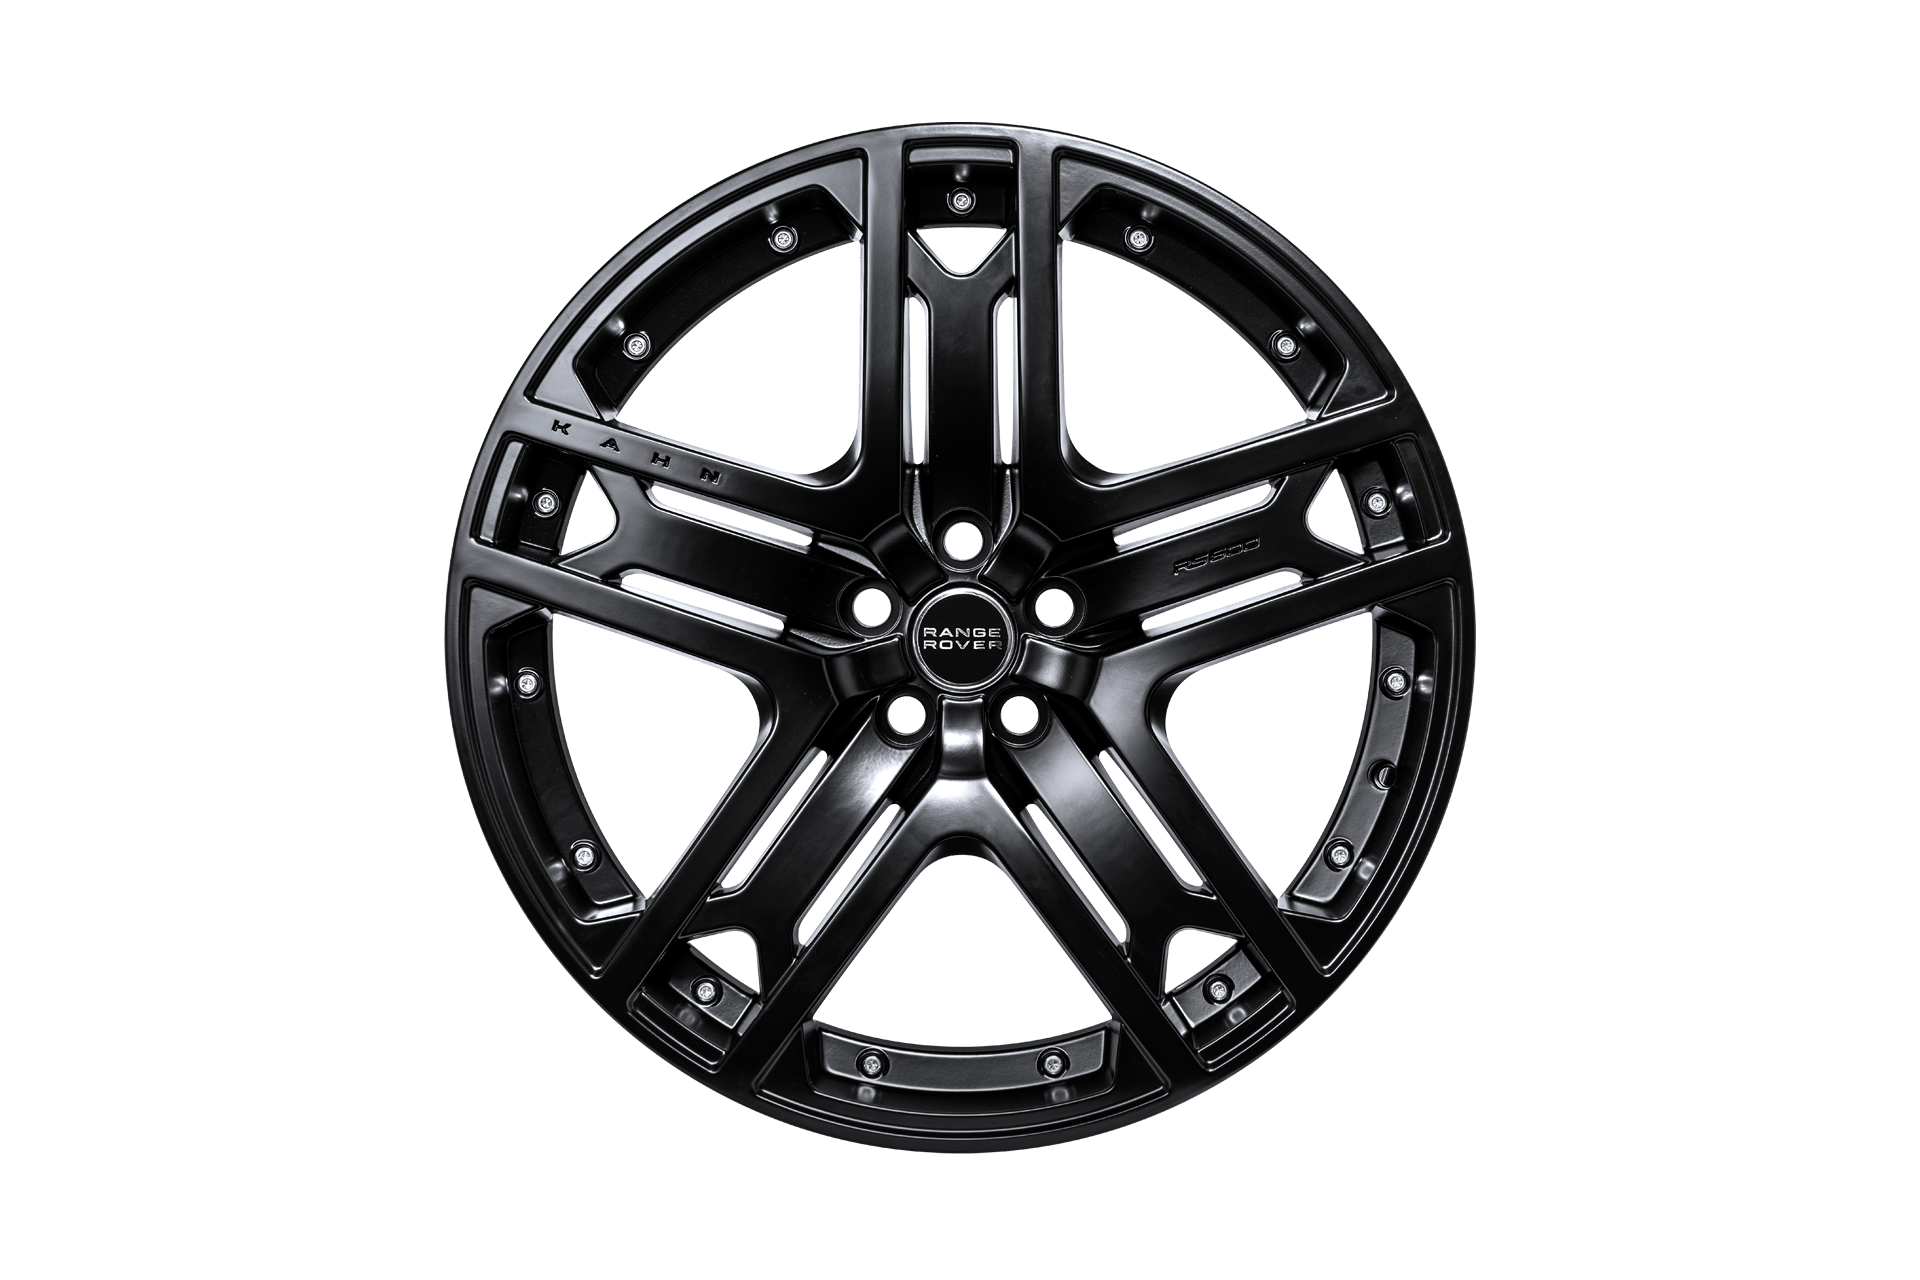 Range Rover Sport (2018-Present) Rs600 Light Alloy Wheels by Kahn - Image 2377